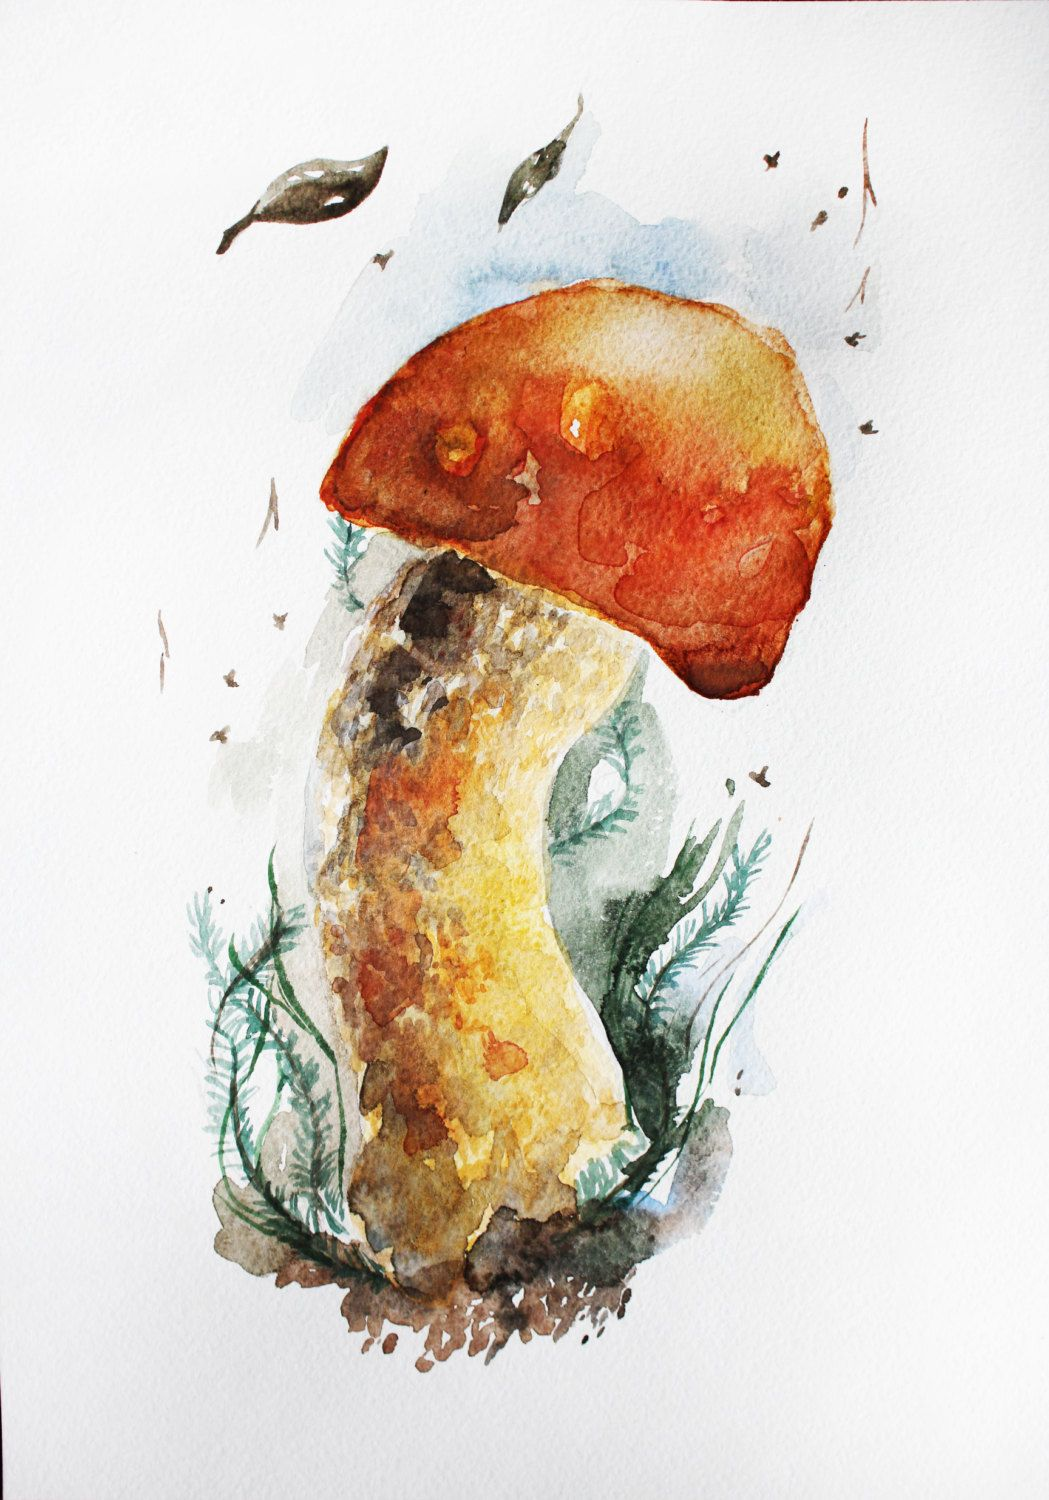 Original Watercolor Painting Of Mushroom Mushroom Art Botanical